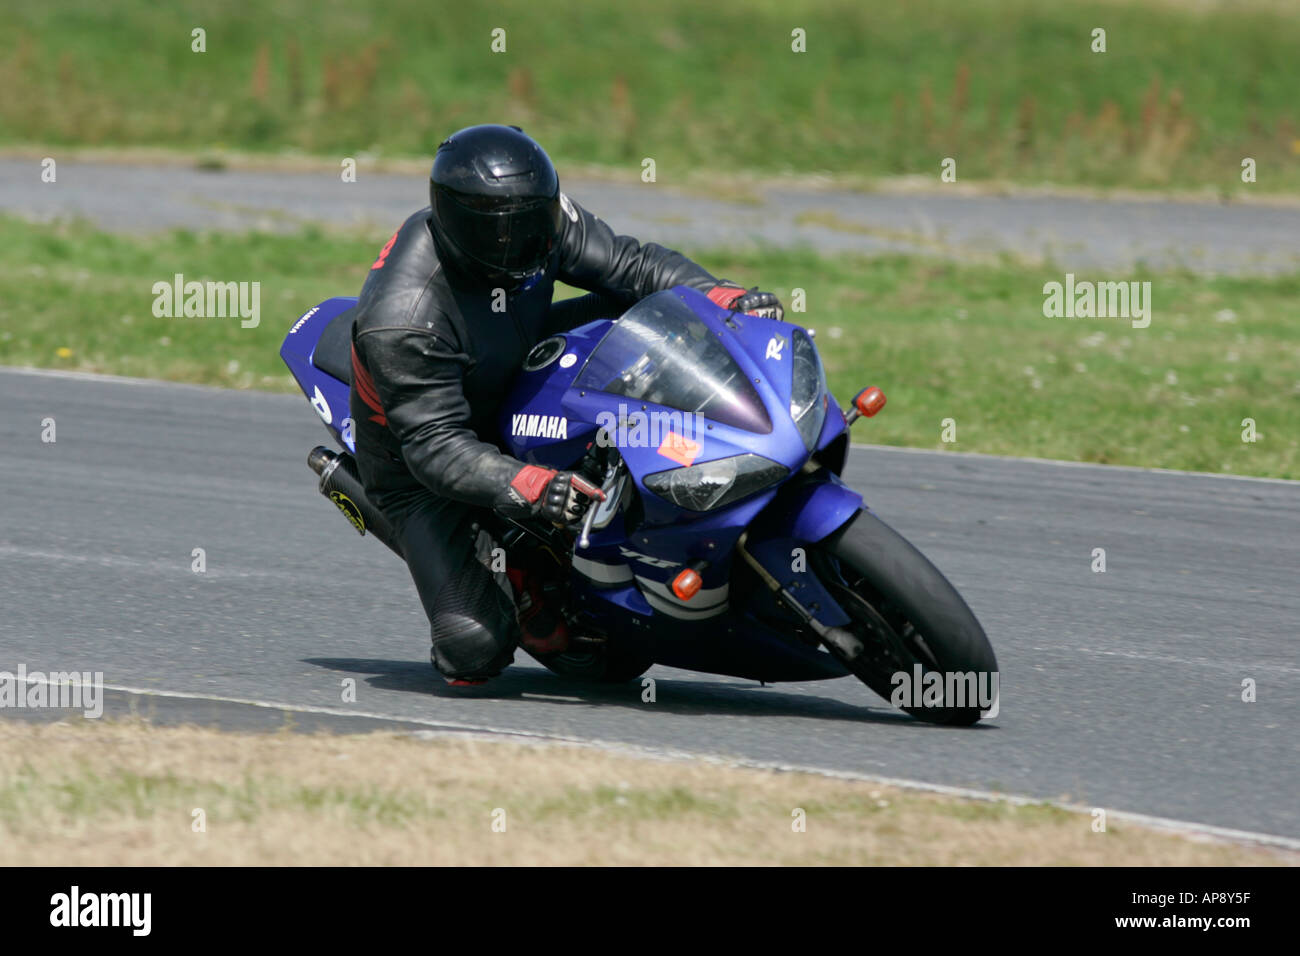 rider in black leathers black helmet on blue yamaha R1 with knee down during trackday at Kirkistown circuit - Stock Image